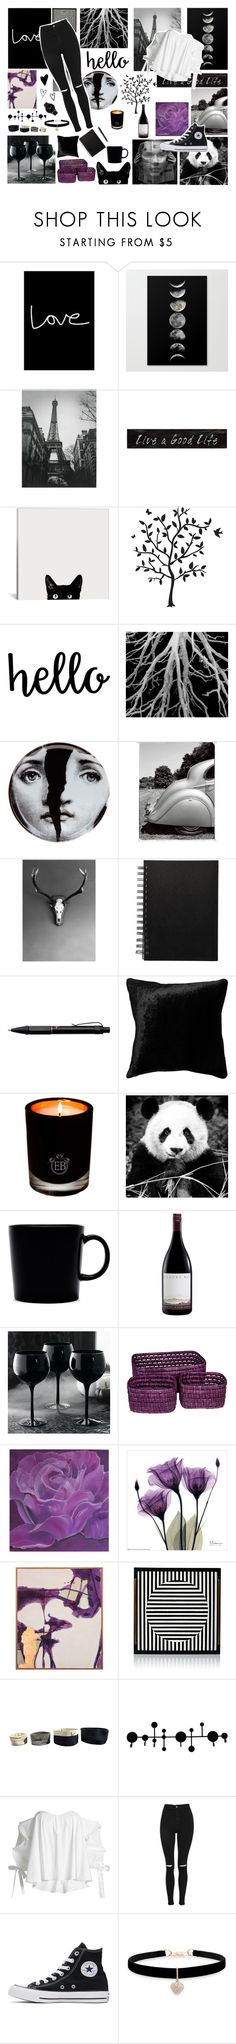 """""""Midnight ♡"""" by l-eliza ❤ liked on Polyvore featuring Native State, 3R Studios, Godinger, Fornasetti, Fisher Space Pen, Squarefeathers, EB Florals, iittala, Grandin Road and Eightmood"""